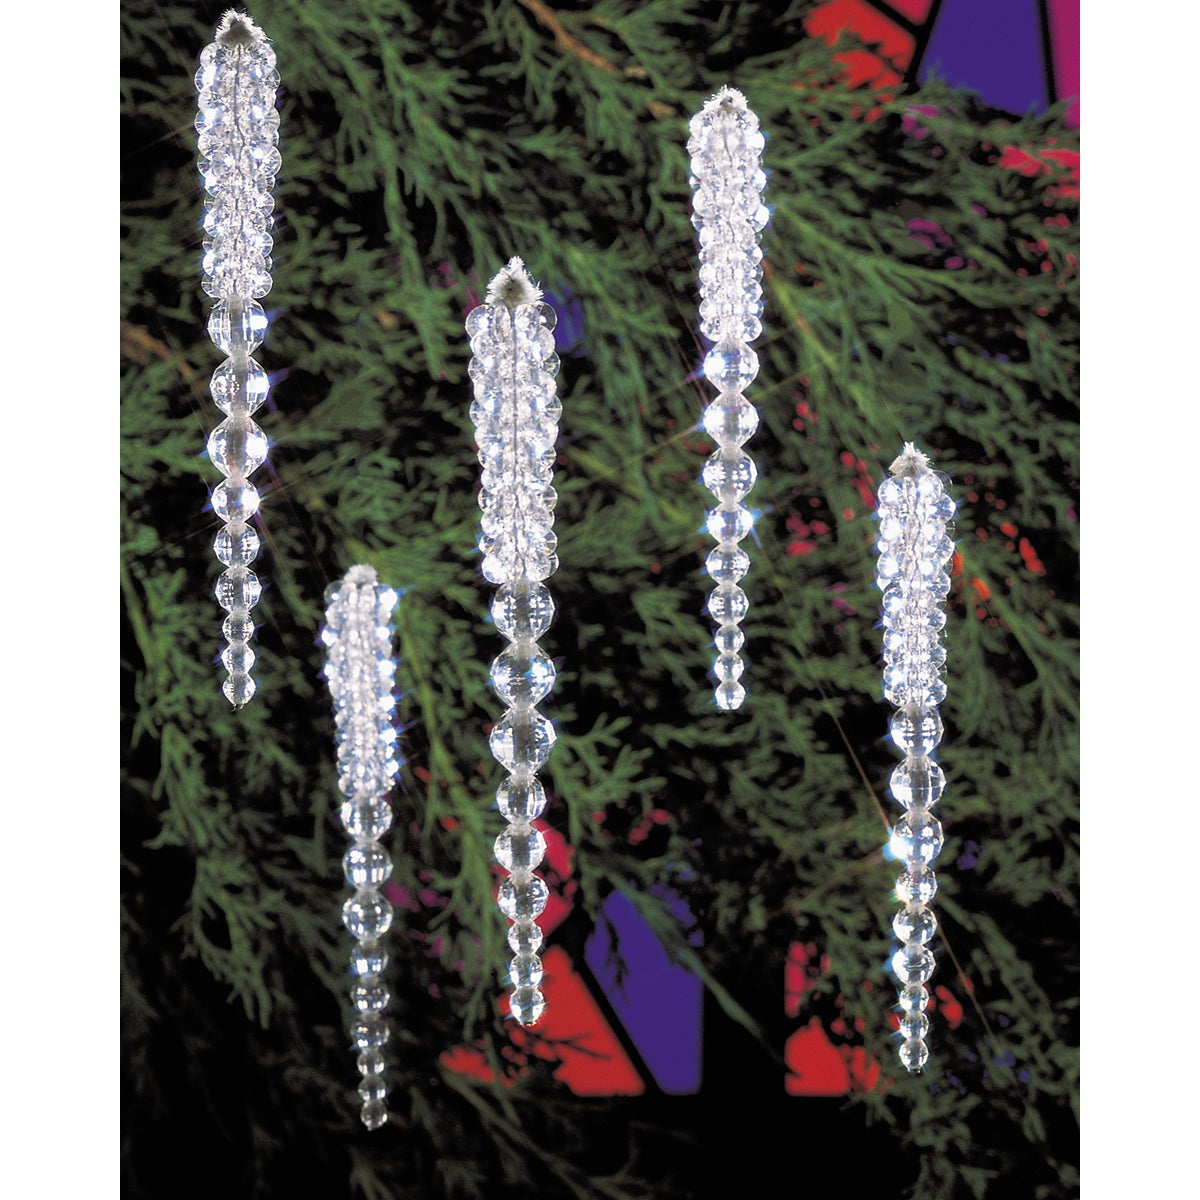 THE BEADERY Holiday Beaded Ornament Kit-Sparkling Icicles...